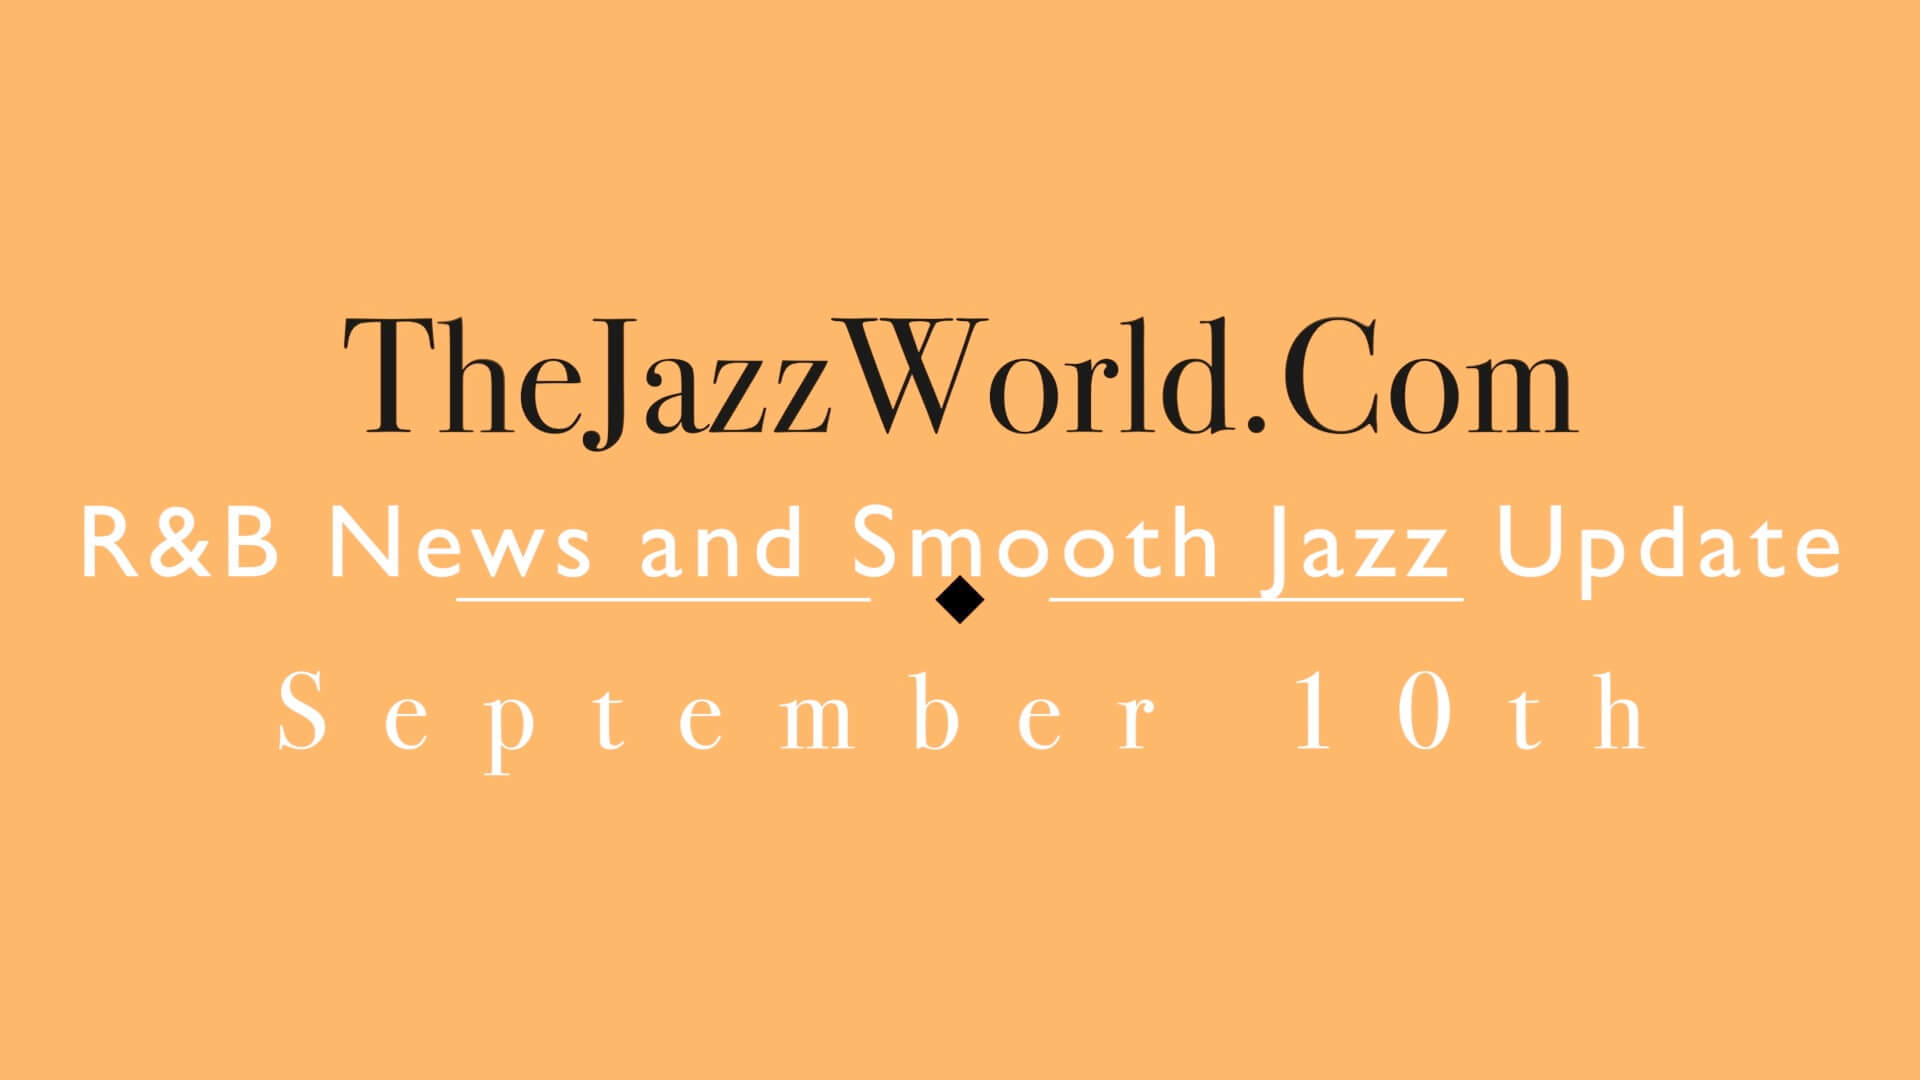 The Jazz World Show 9:10